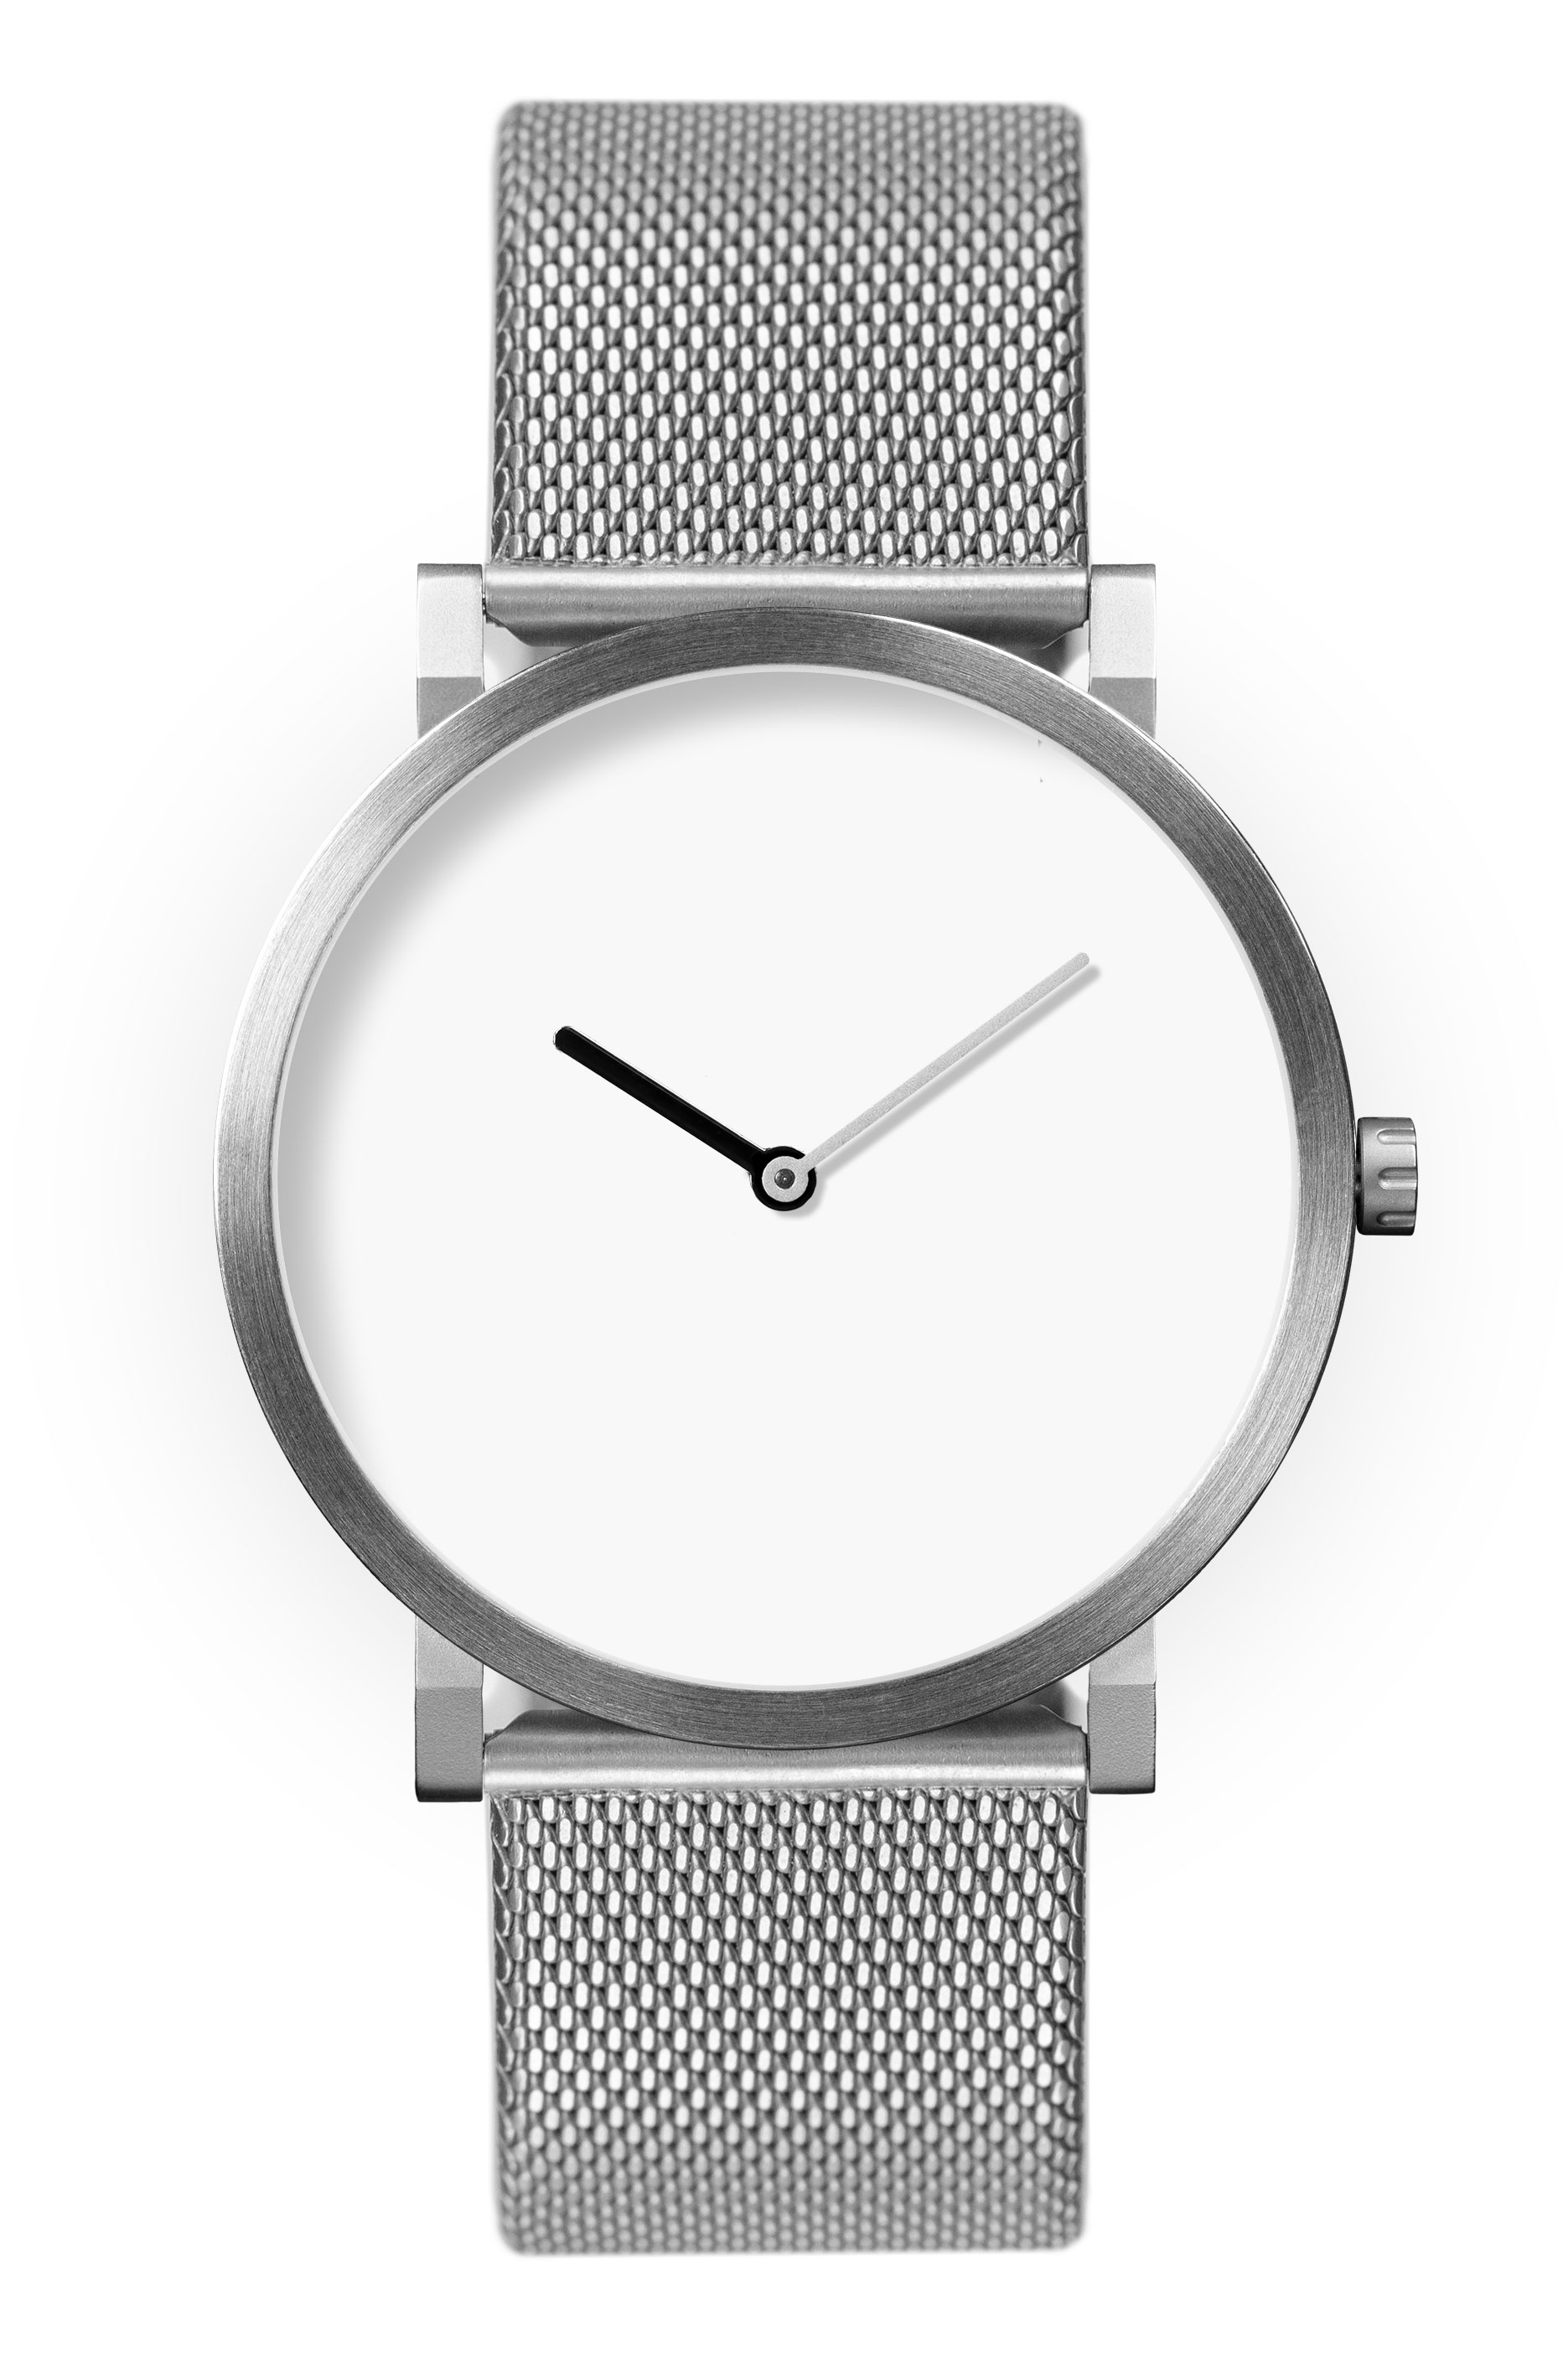 Copy of Copy of Glossy White with Stainless Steel Strap